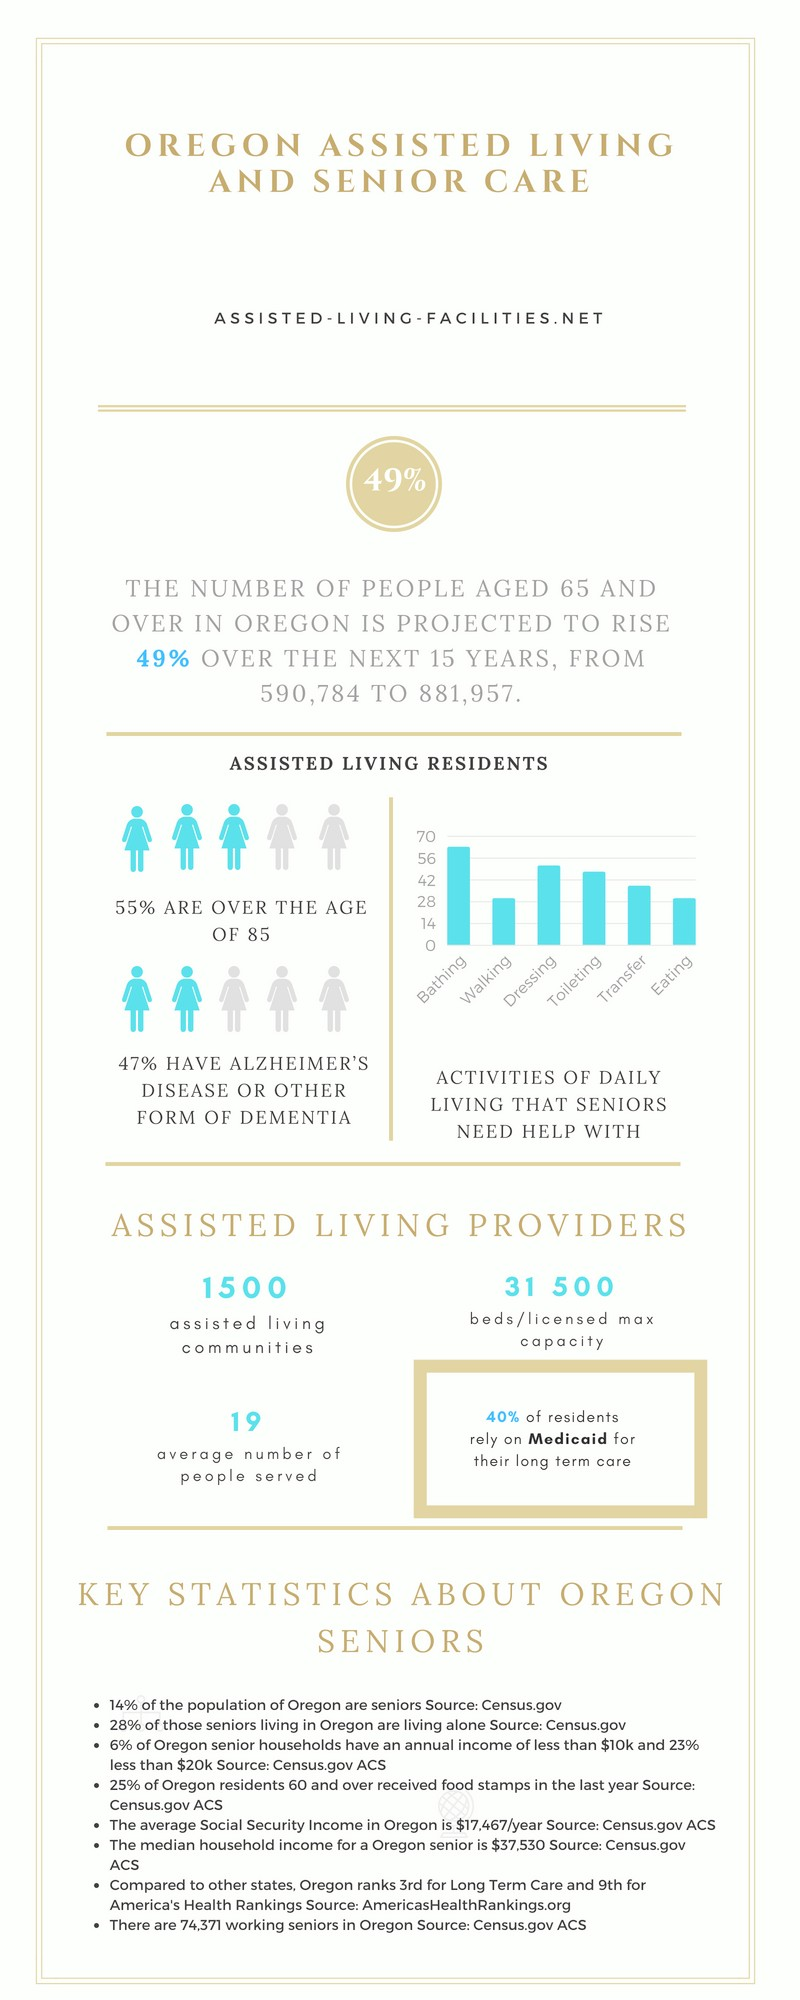 Assisted living facilities in Oregon